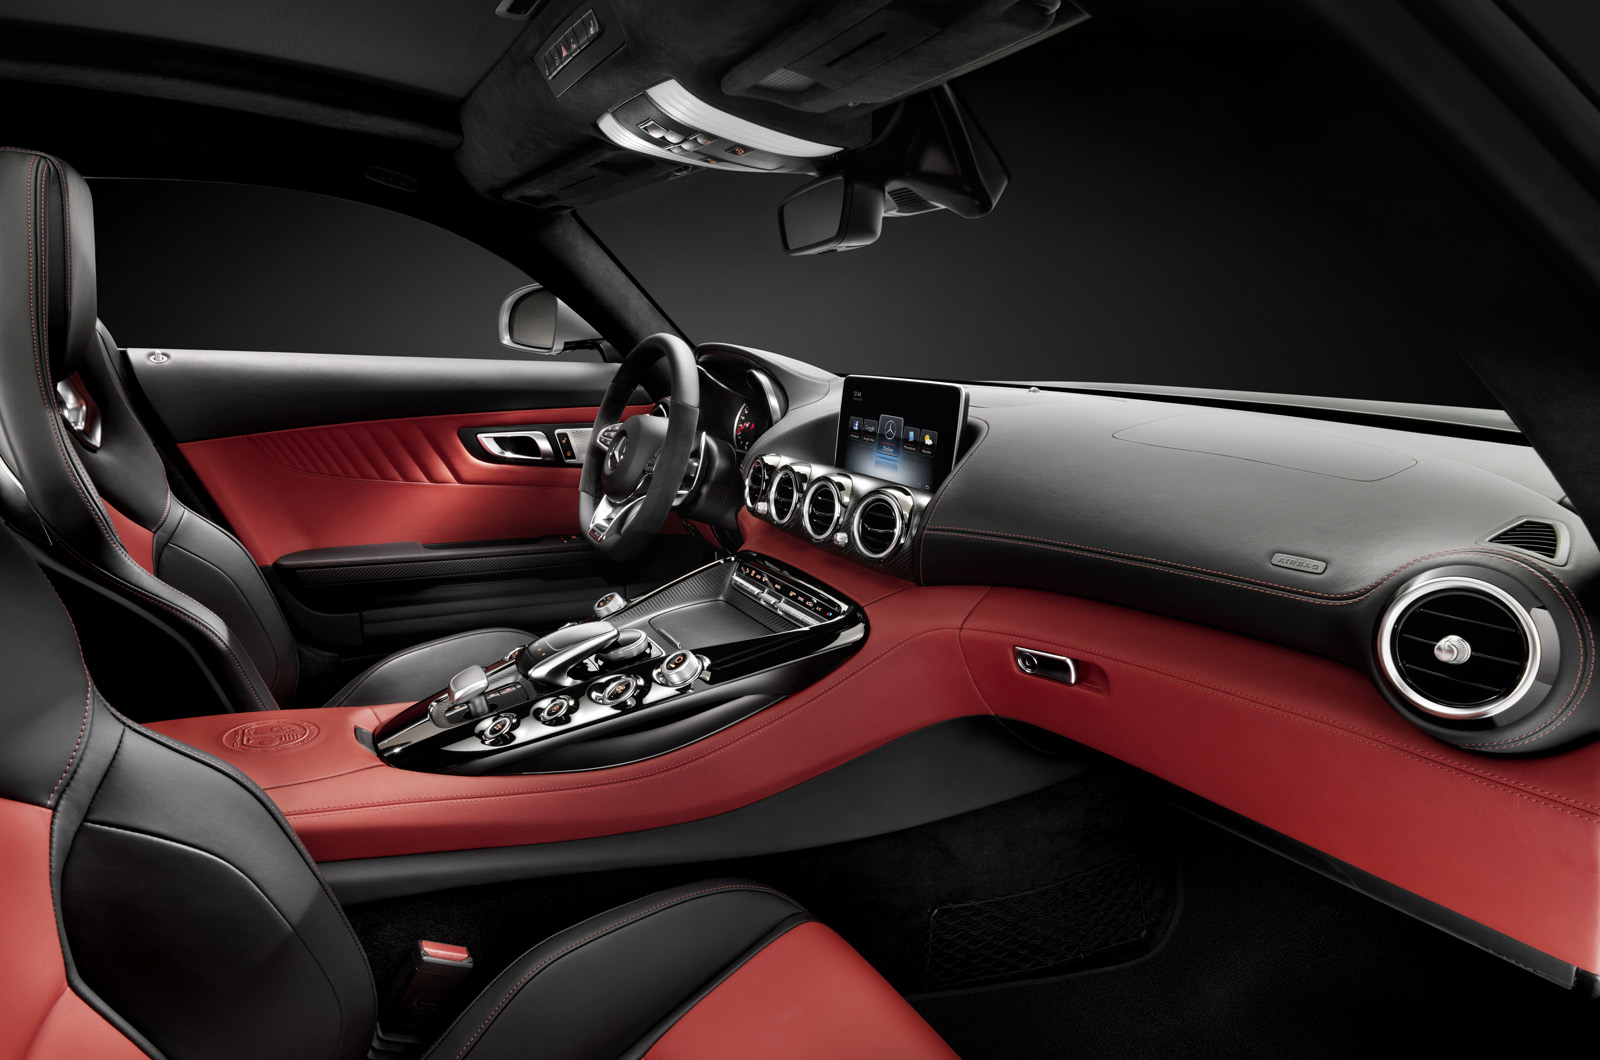 Alfa img showing gt sls amg gt roadster interior - Alfa Img Showing Gt Sls Amg Gt Roadster Interior 57